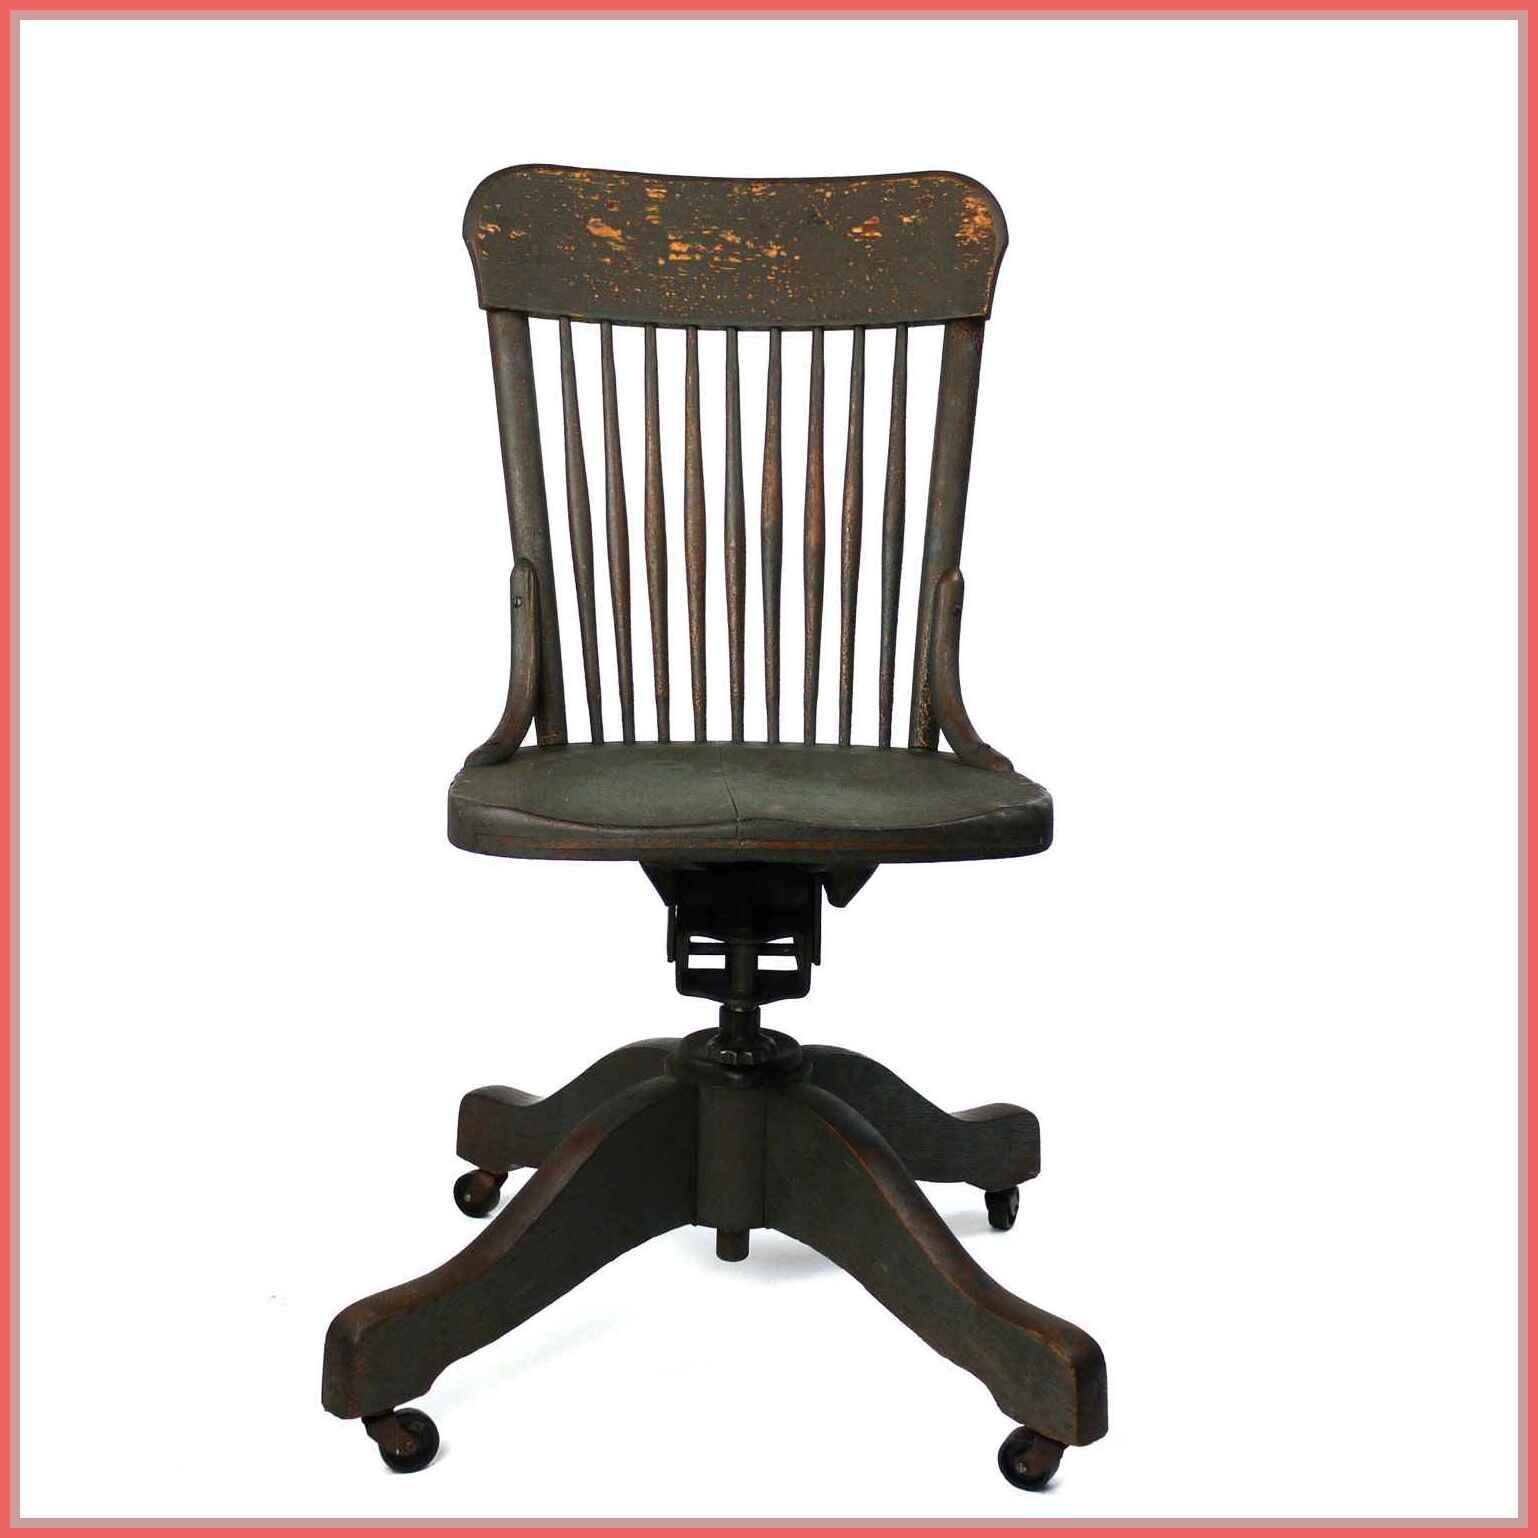 54 Reference Of Swivel Office Chair Wooden Legs In 2020 Wood Desk Chair Wooden Desk Chairs Wooden Office Chair